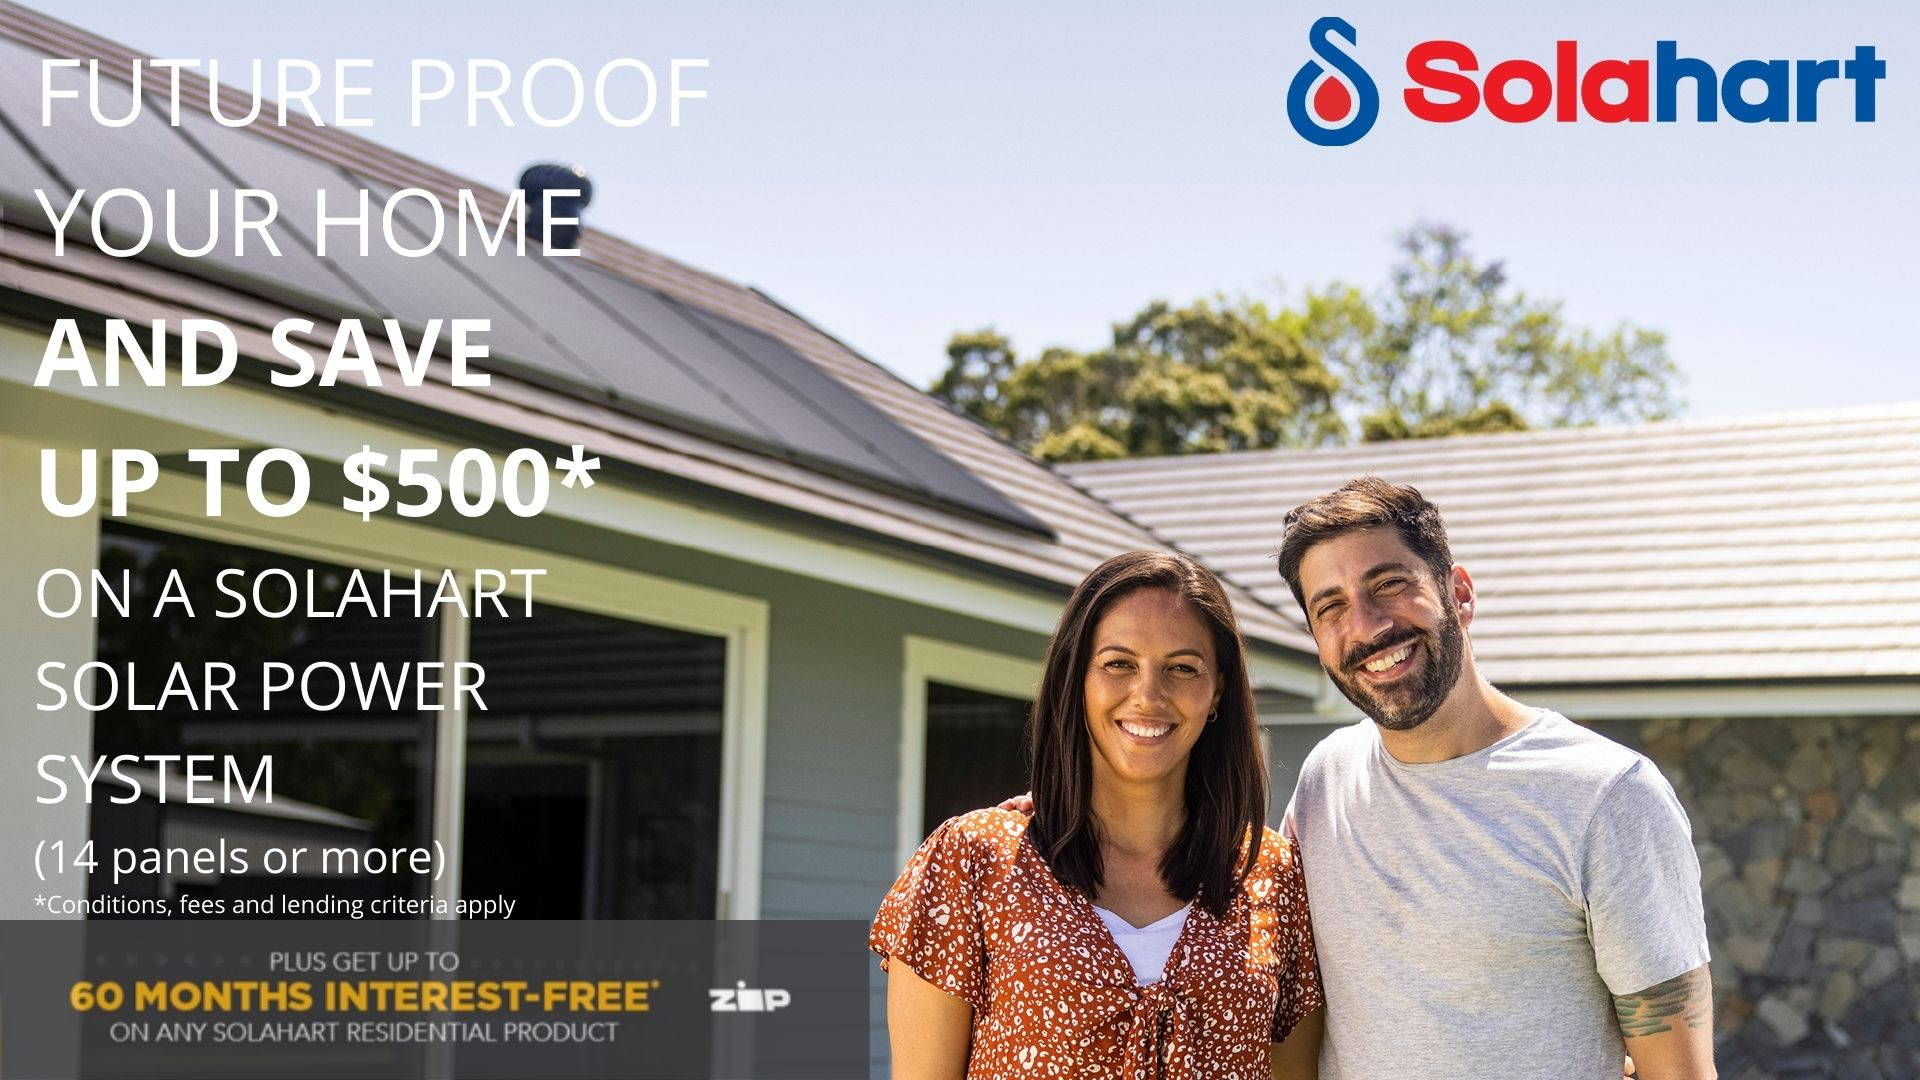 solar hotwater and power special offers